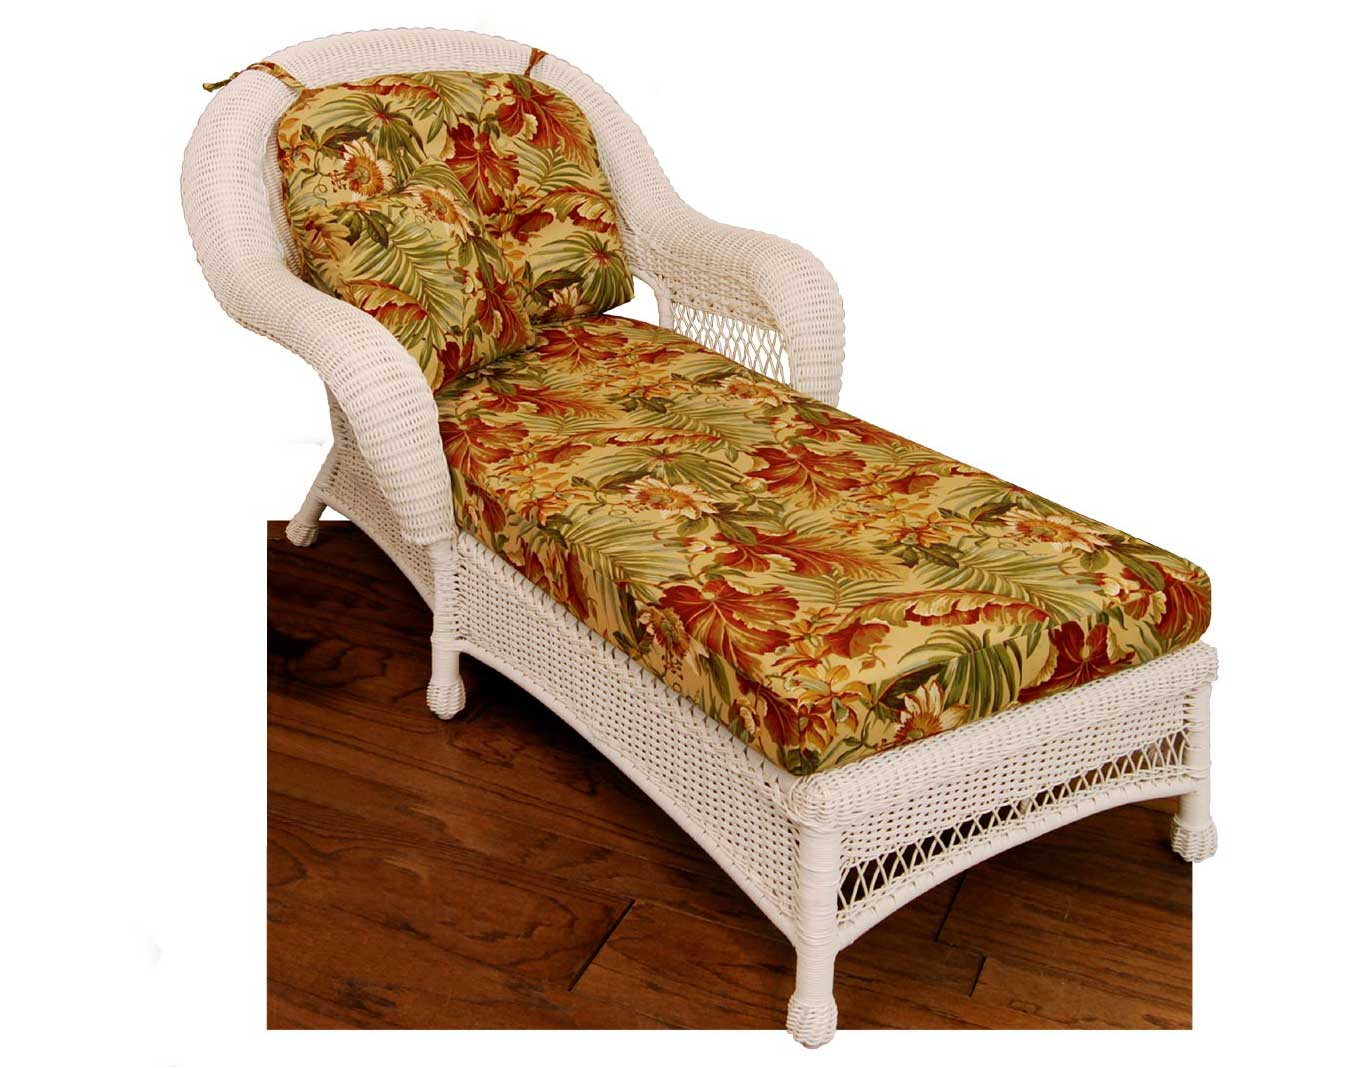 wicker domain chaise lounge w cushions. Black Bedroom Furniture Sets. Home Design Ideas